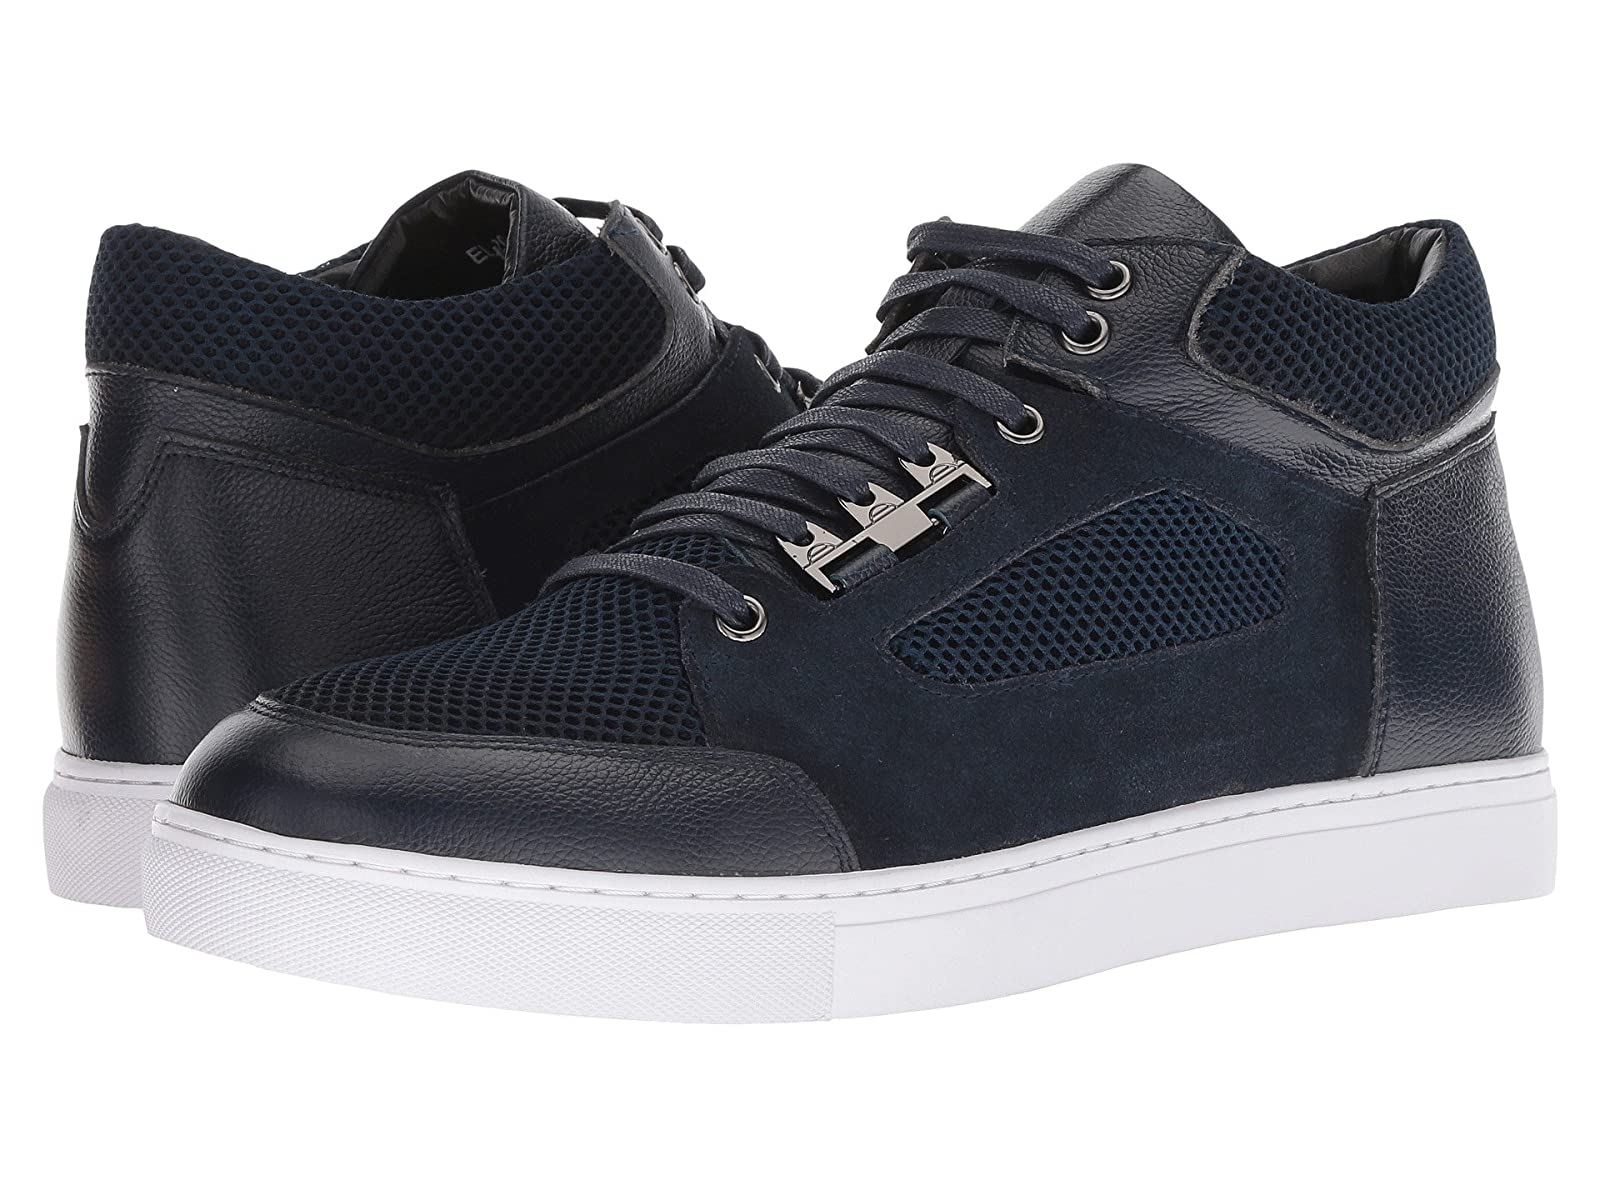 English Laundry BreakCheap and distinctive eye-catching shoes